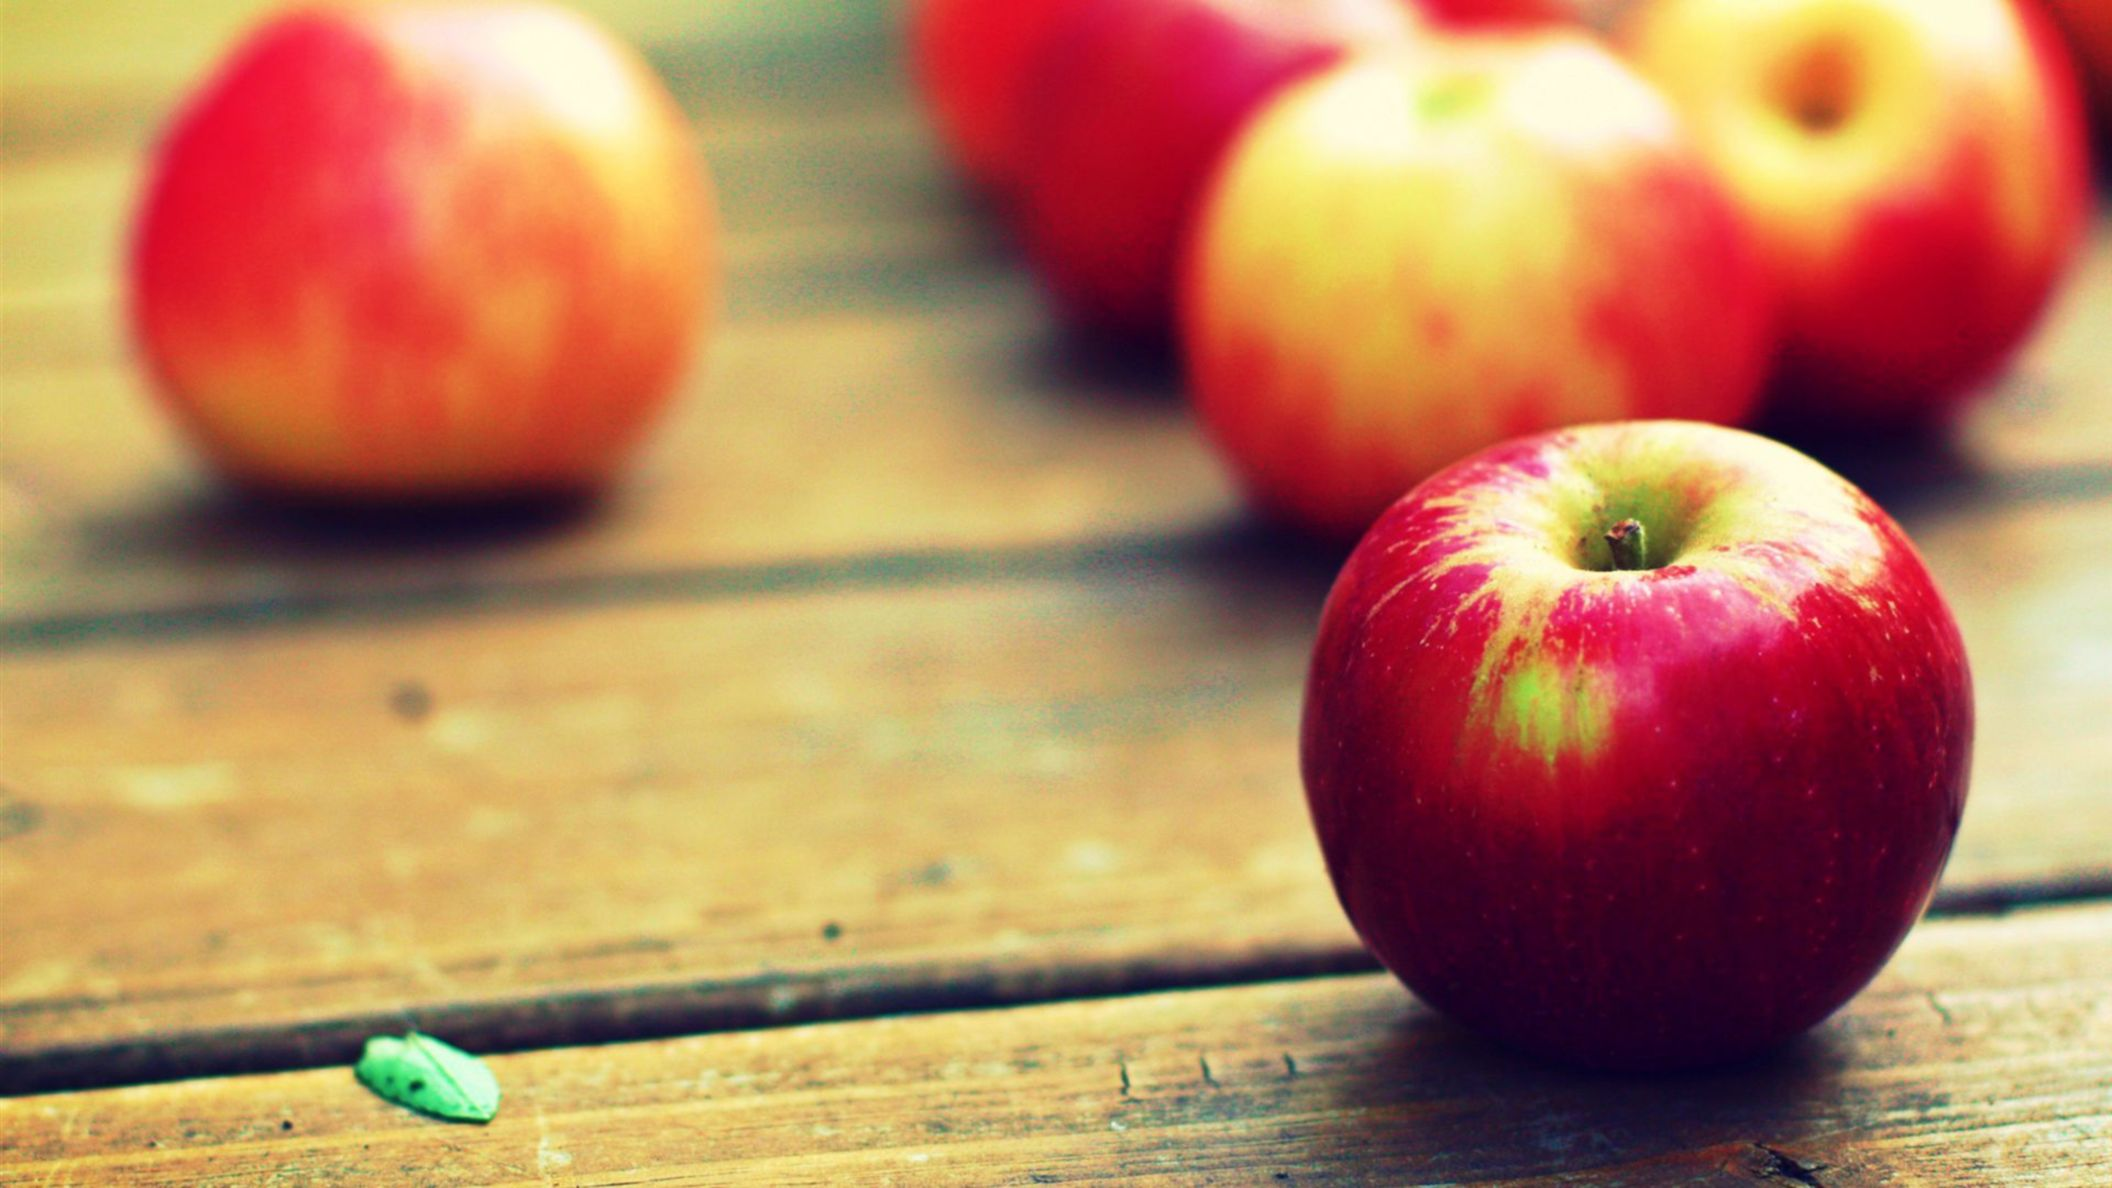 Download free HD Vintage Red Apple Fruit Wallpaper, image